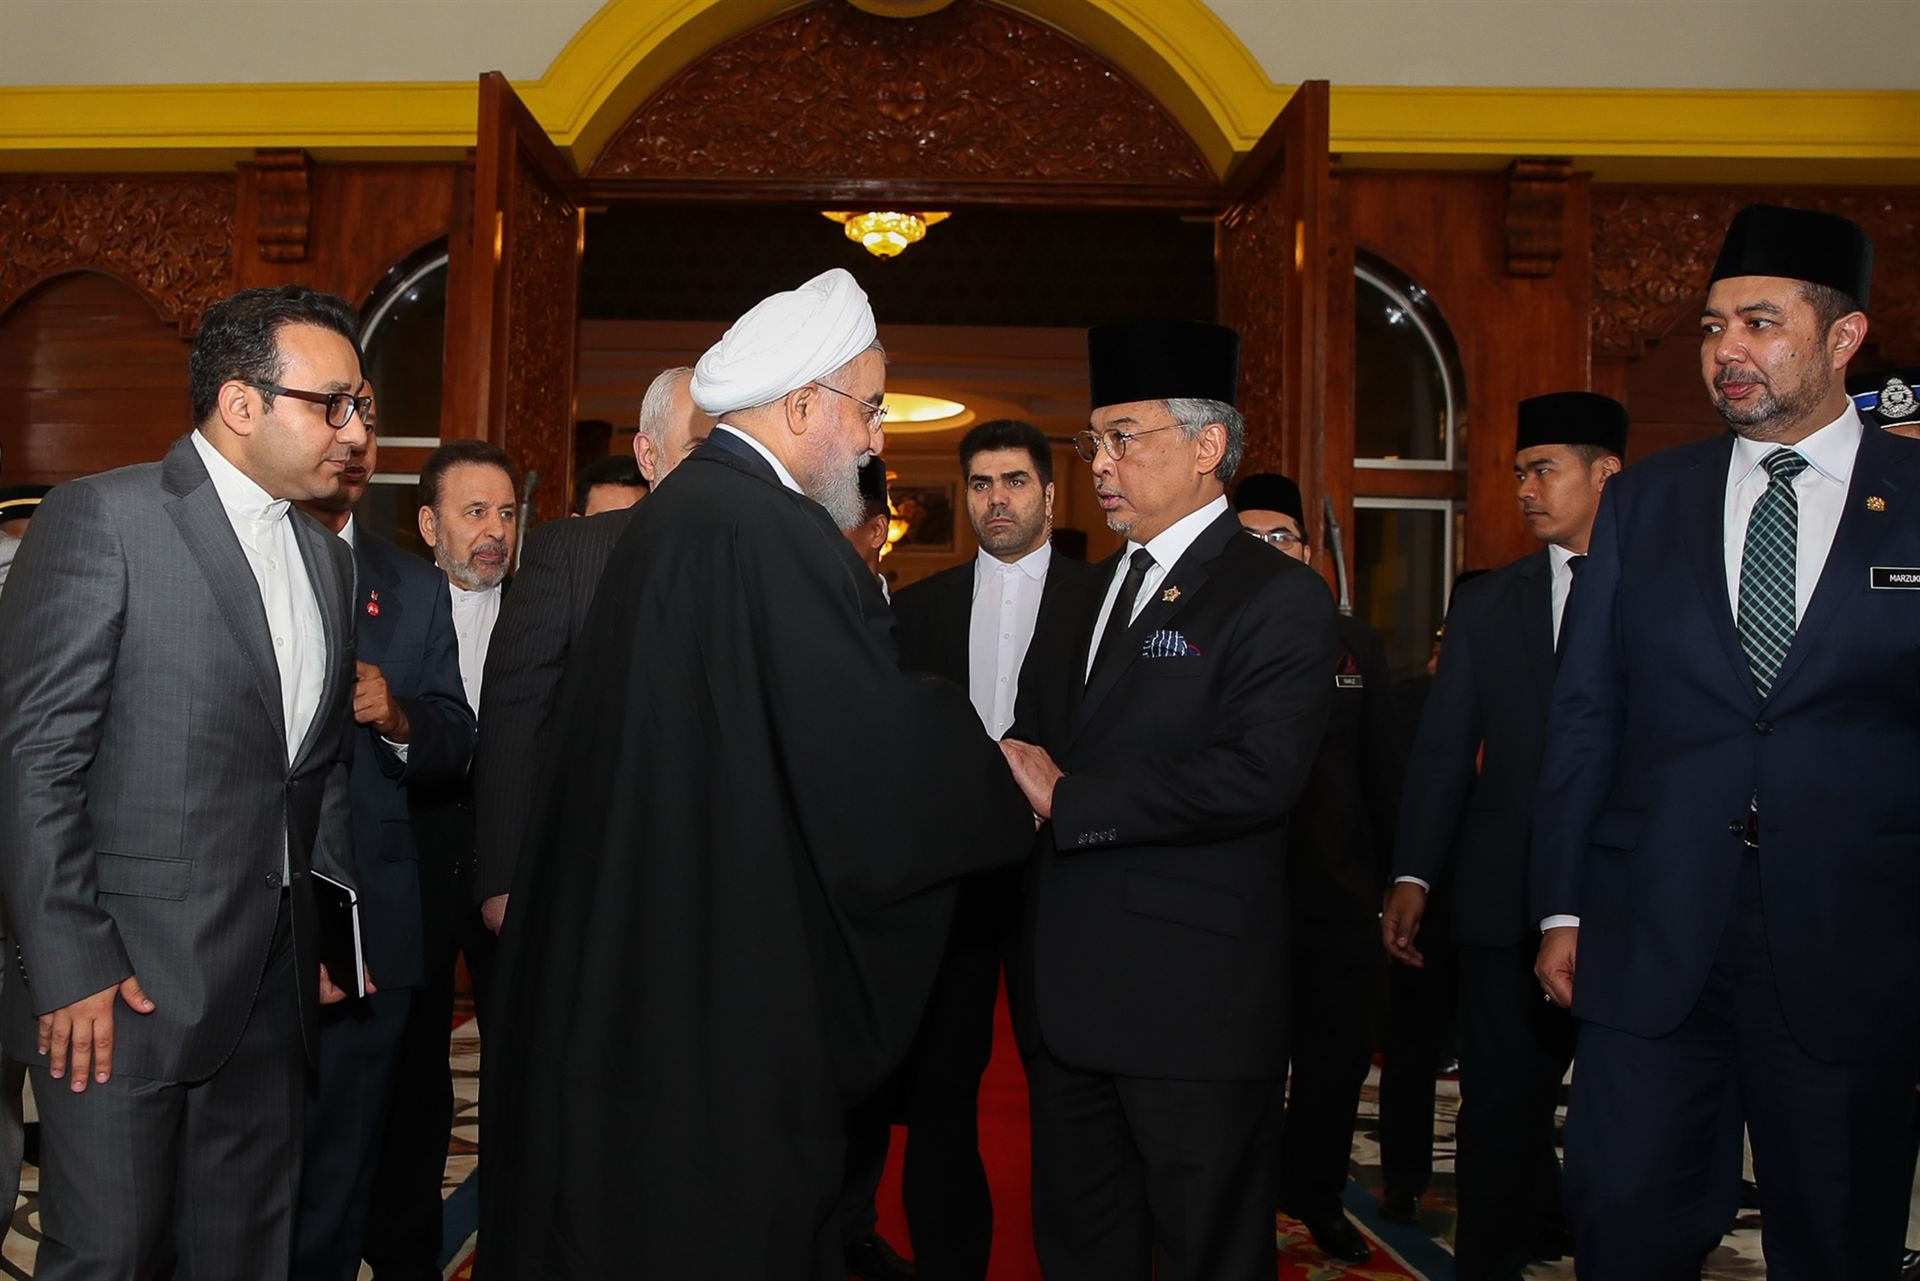 President of the Islamic Republic of Iran Hassan Rouhani of Iran in a meeting with King of Malaysia Sultan Abdullah on the sides of Kuala Lumpur Summit 2019. Image: Islamic Republic of Iran Ministry of Foreign Affairs https://en.mfa.ir